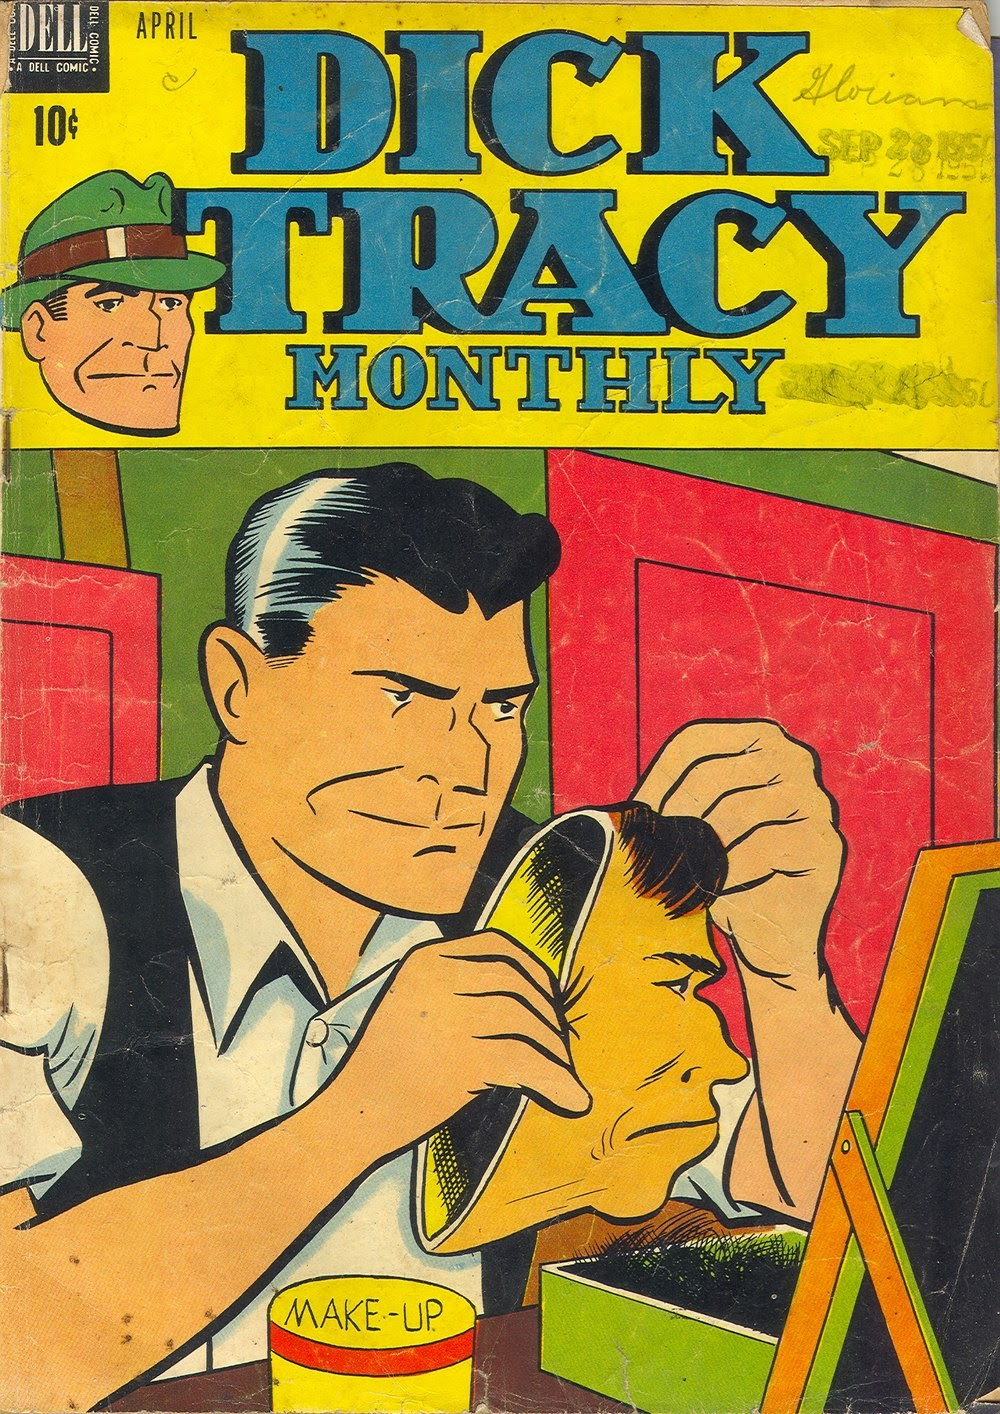 Dick Tracy Monthly 16 Page 1